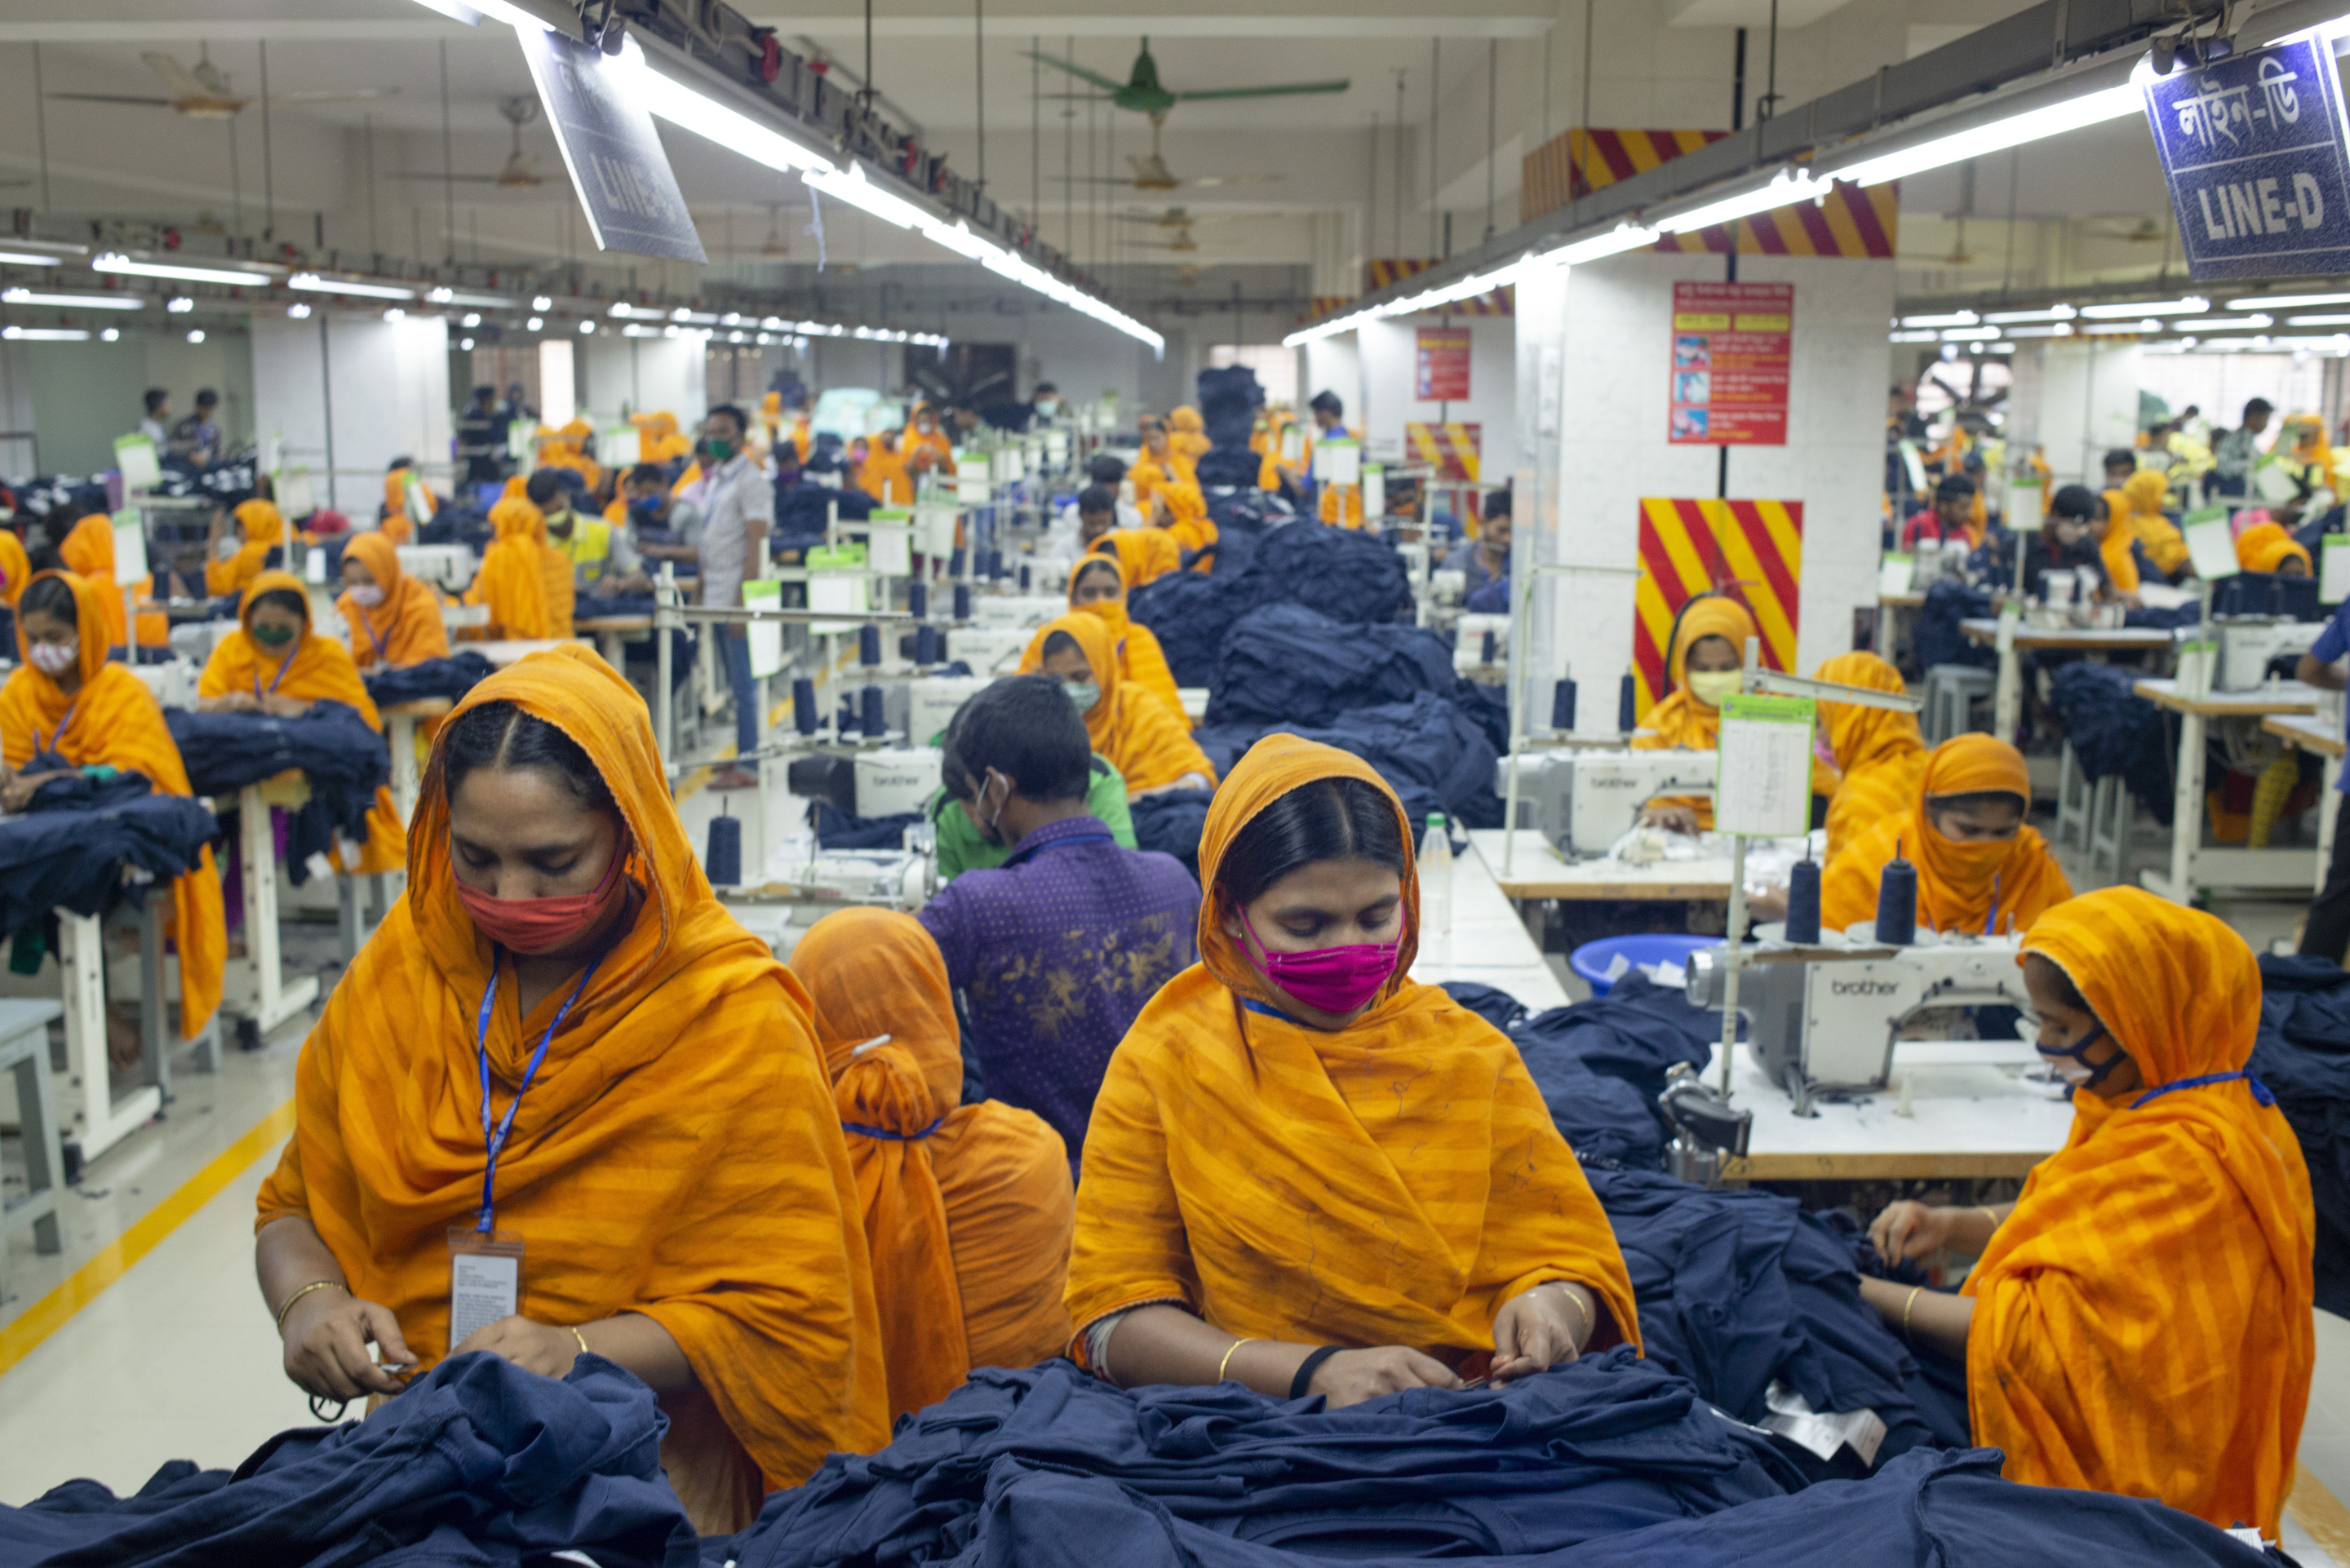 Bangladesh garment manufacturers are seeing an increase in orders from U.S. companies shifting business from China.